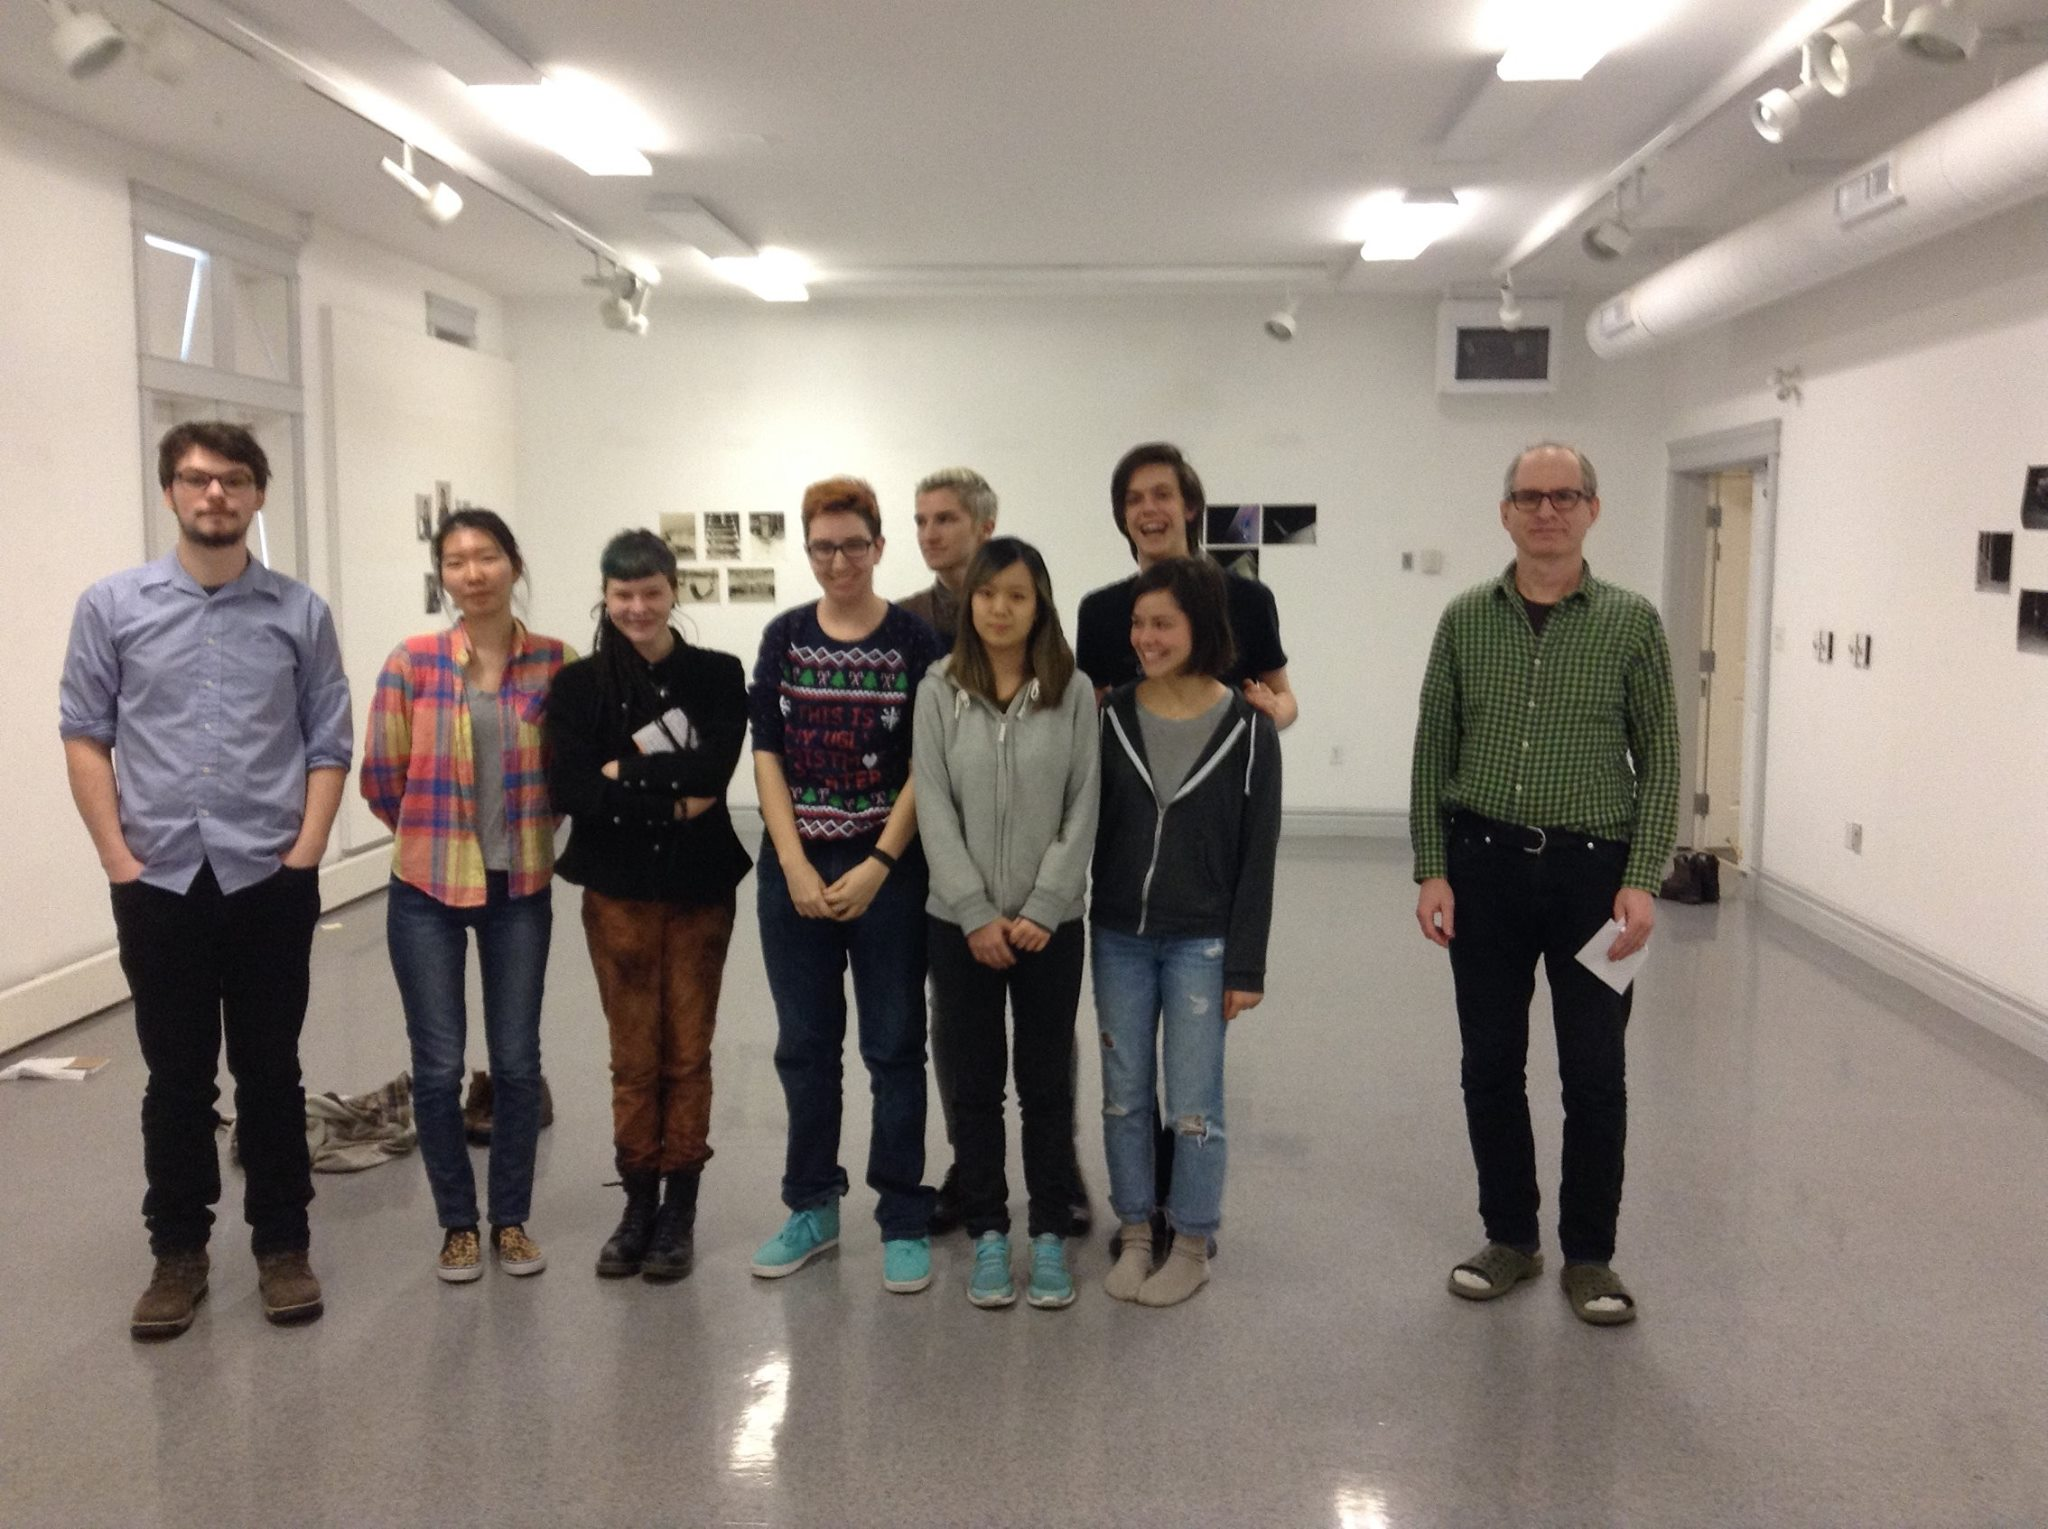 Paul Litherland and students of the Yukon School of Visual Art, February 2016